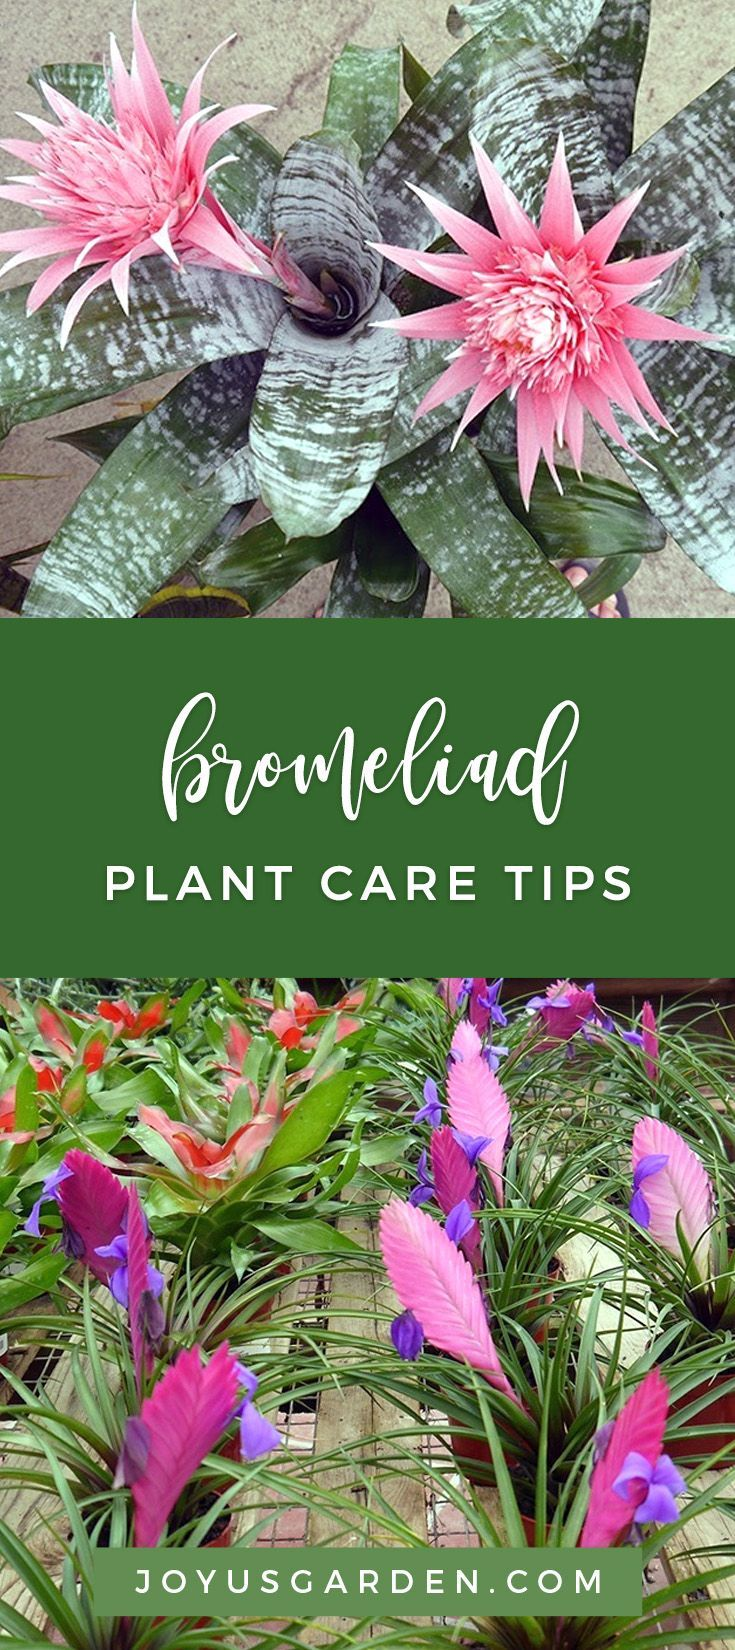 Bromeliads are tough, interesting and don't require much fuss. That's my kind of plant to have in a climate where gardening is a year-round activity. They're a very popular houseplant so I want to share with what I've learned over the years about caring for them indoors. #bromeliad #plant #planting #plantingtips #gardening #gardeningtips #garden #gardener #beginnergardener #beginnergardening #howtogarden